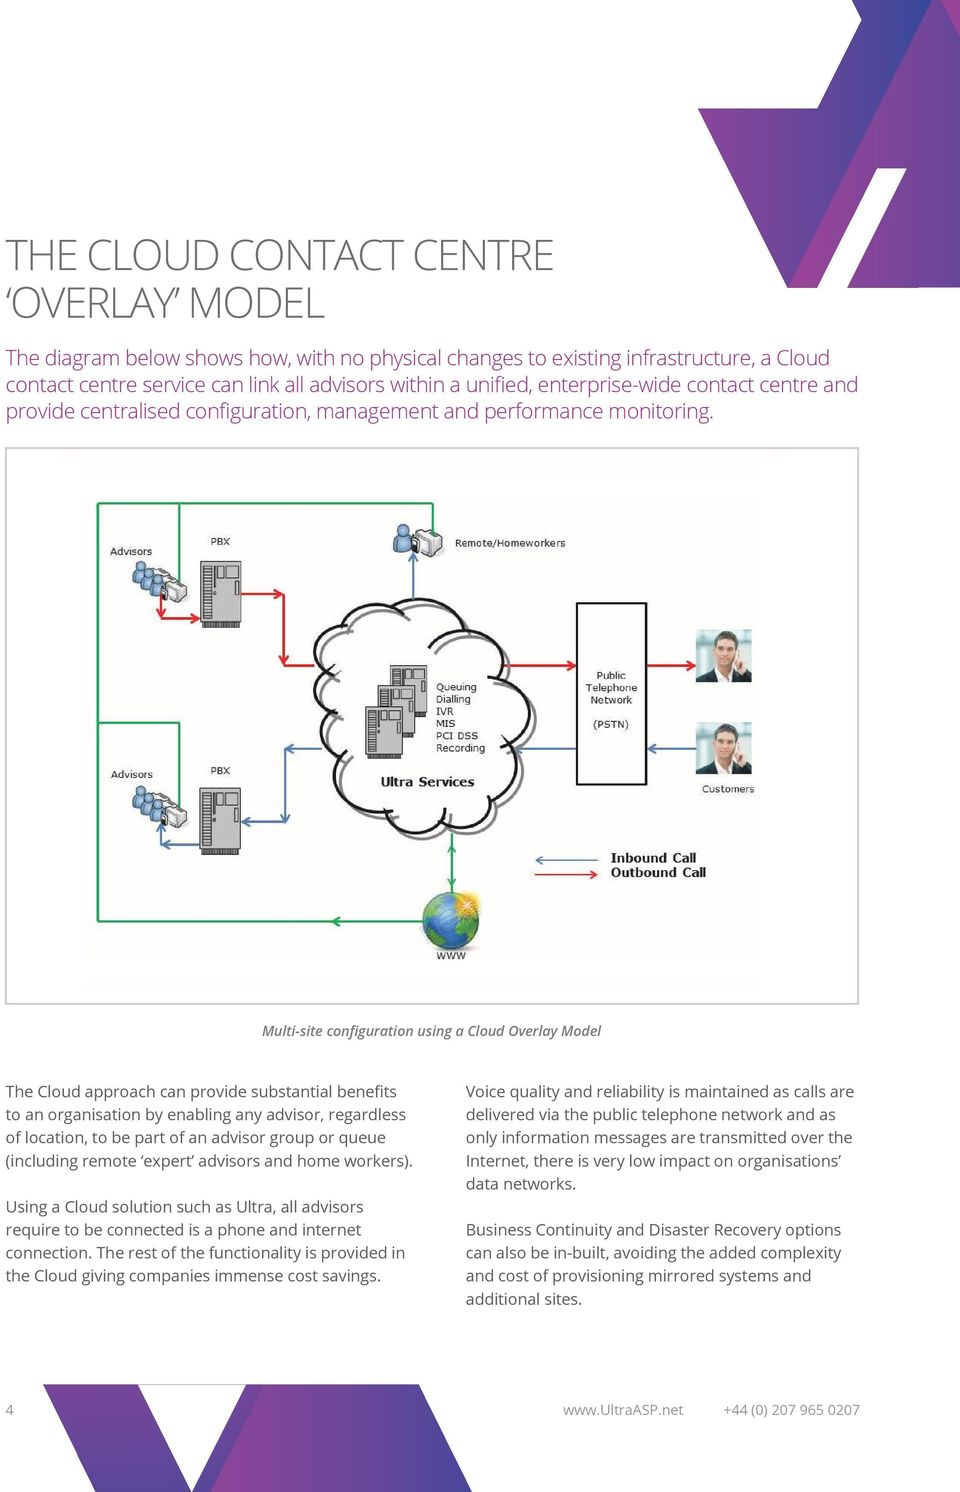 Multi-site configuration using a Cloud Overlay Model The Cloud approach can provide substantial benefits to an organisation by enabling any advisor, regardless of location, to be part of an advisor